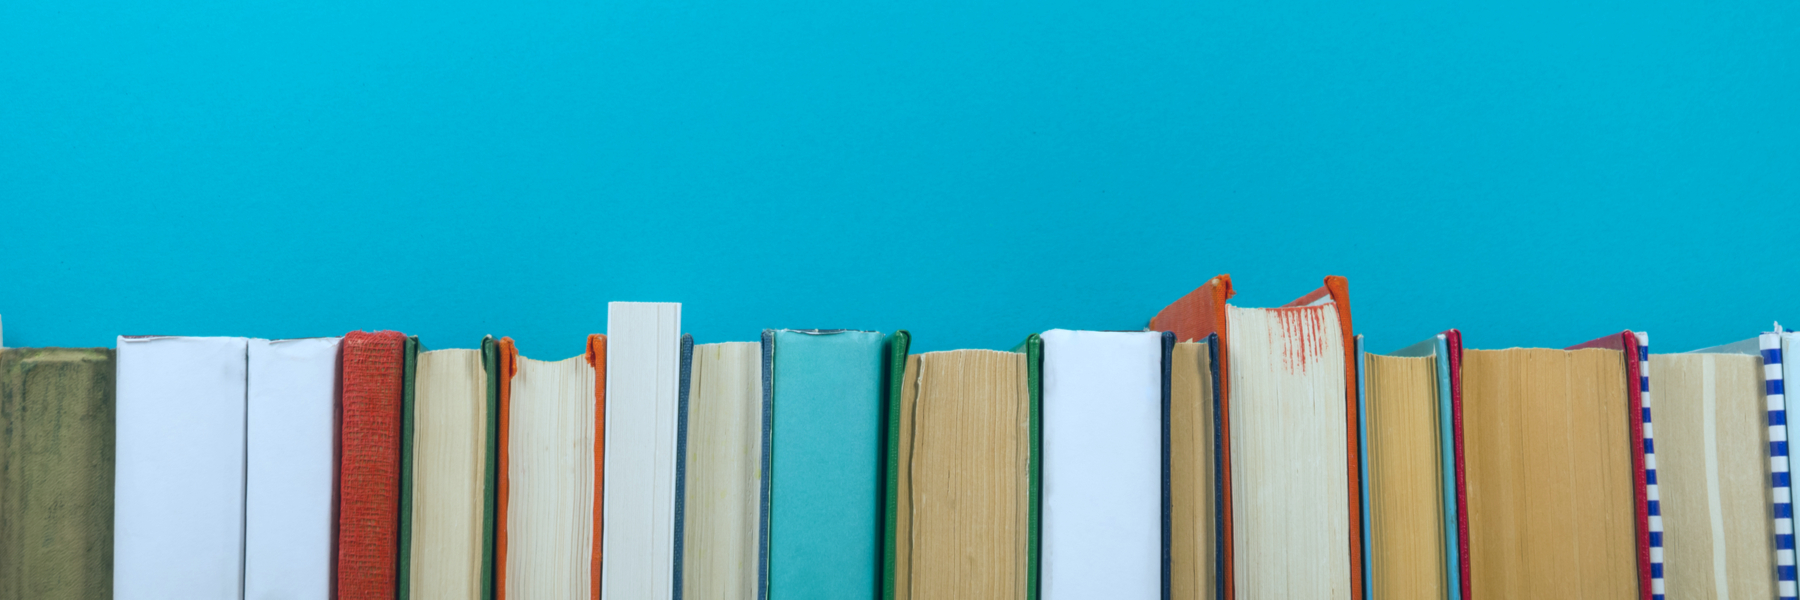 Teal background with rough edges of books across the bottom third.